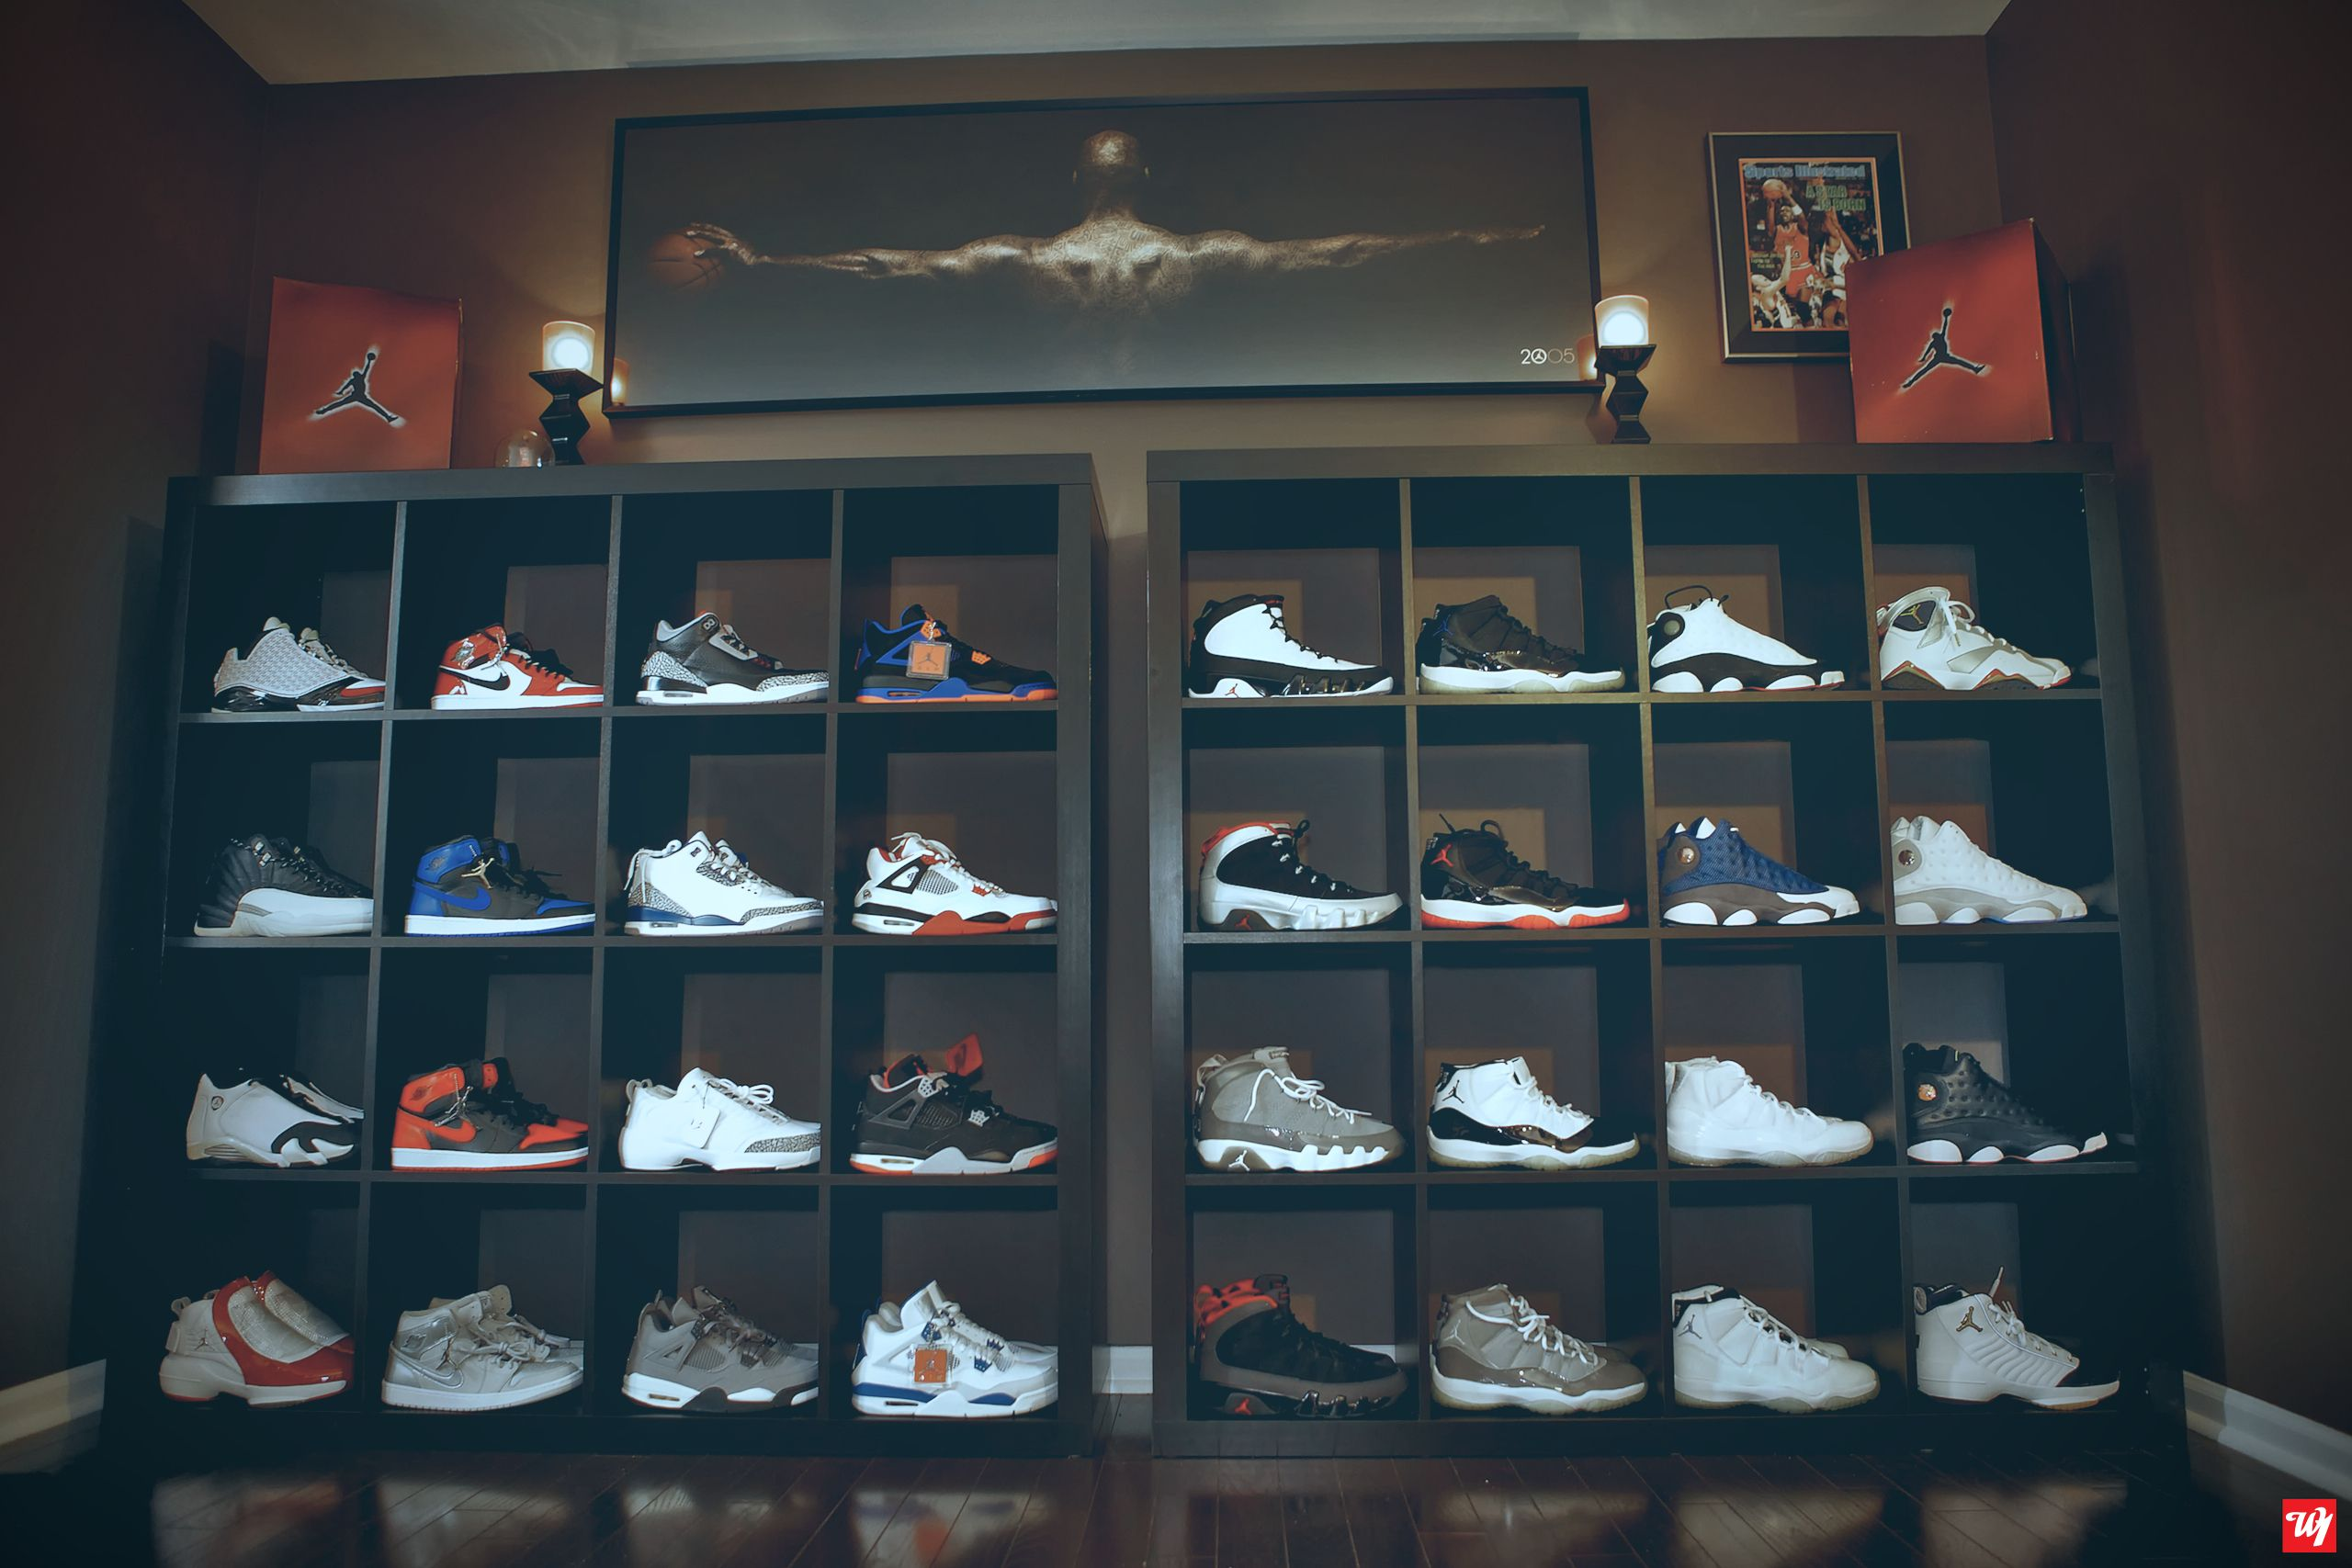 huge discount 22eaf 395e4 Ward 1 Air Jordan Collection Shoe Room   Air Jordan Deadstock   wall.  Sneakerhead Organization